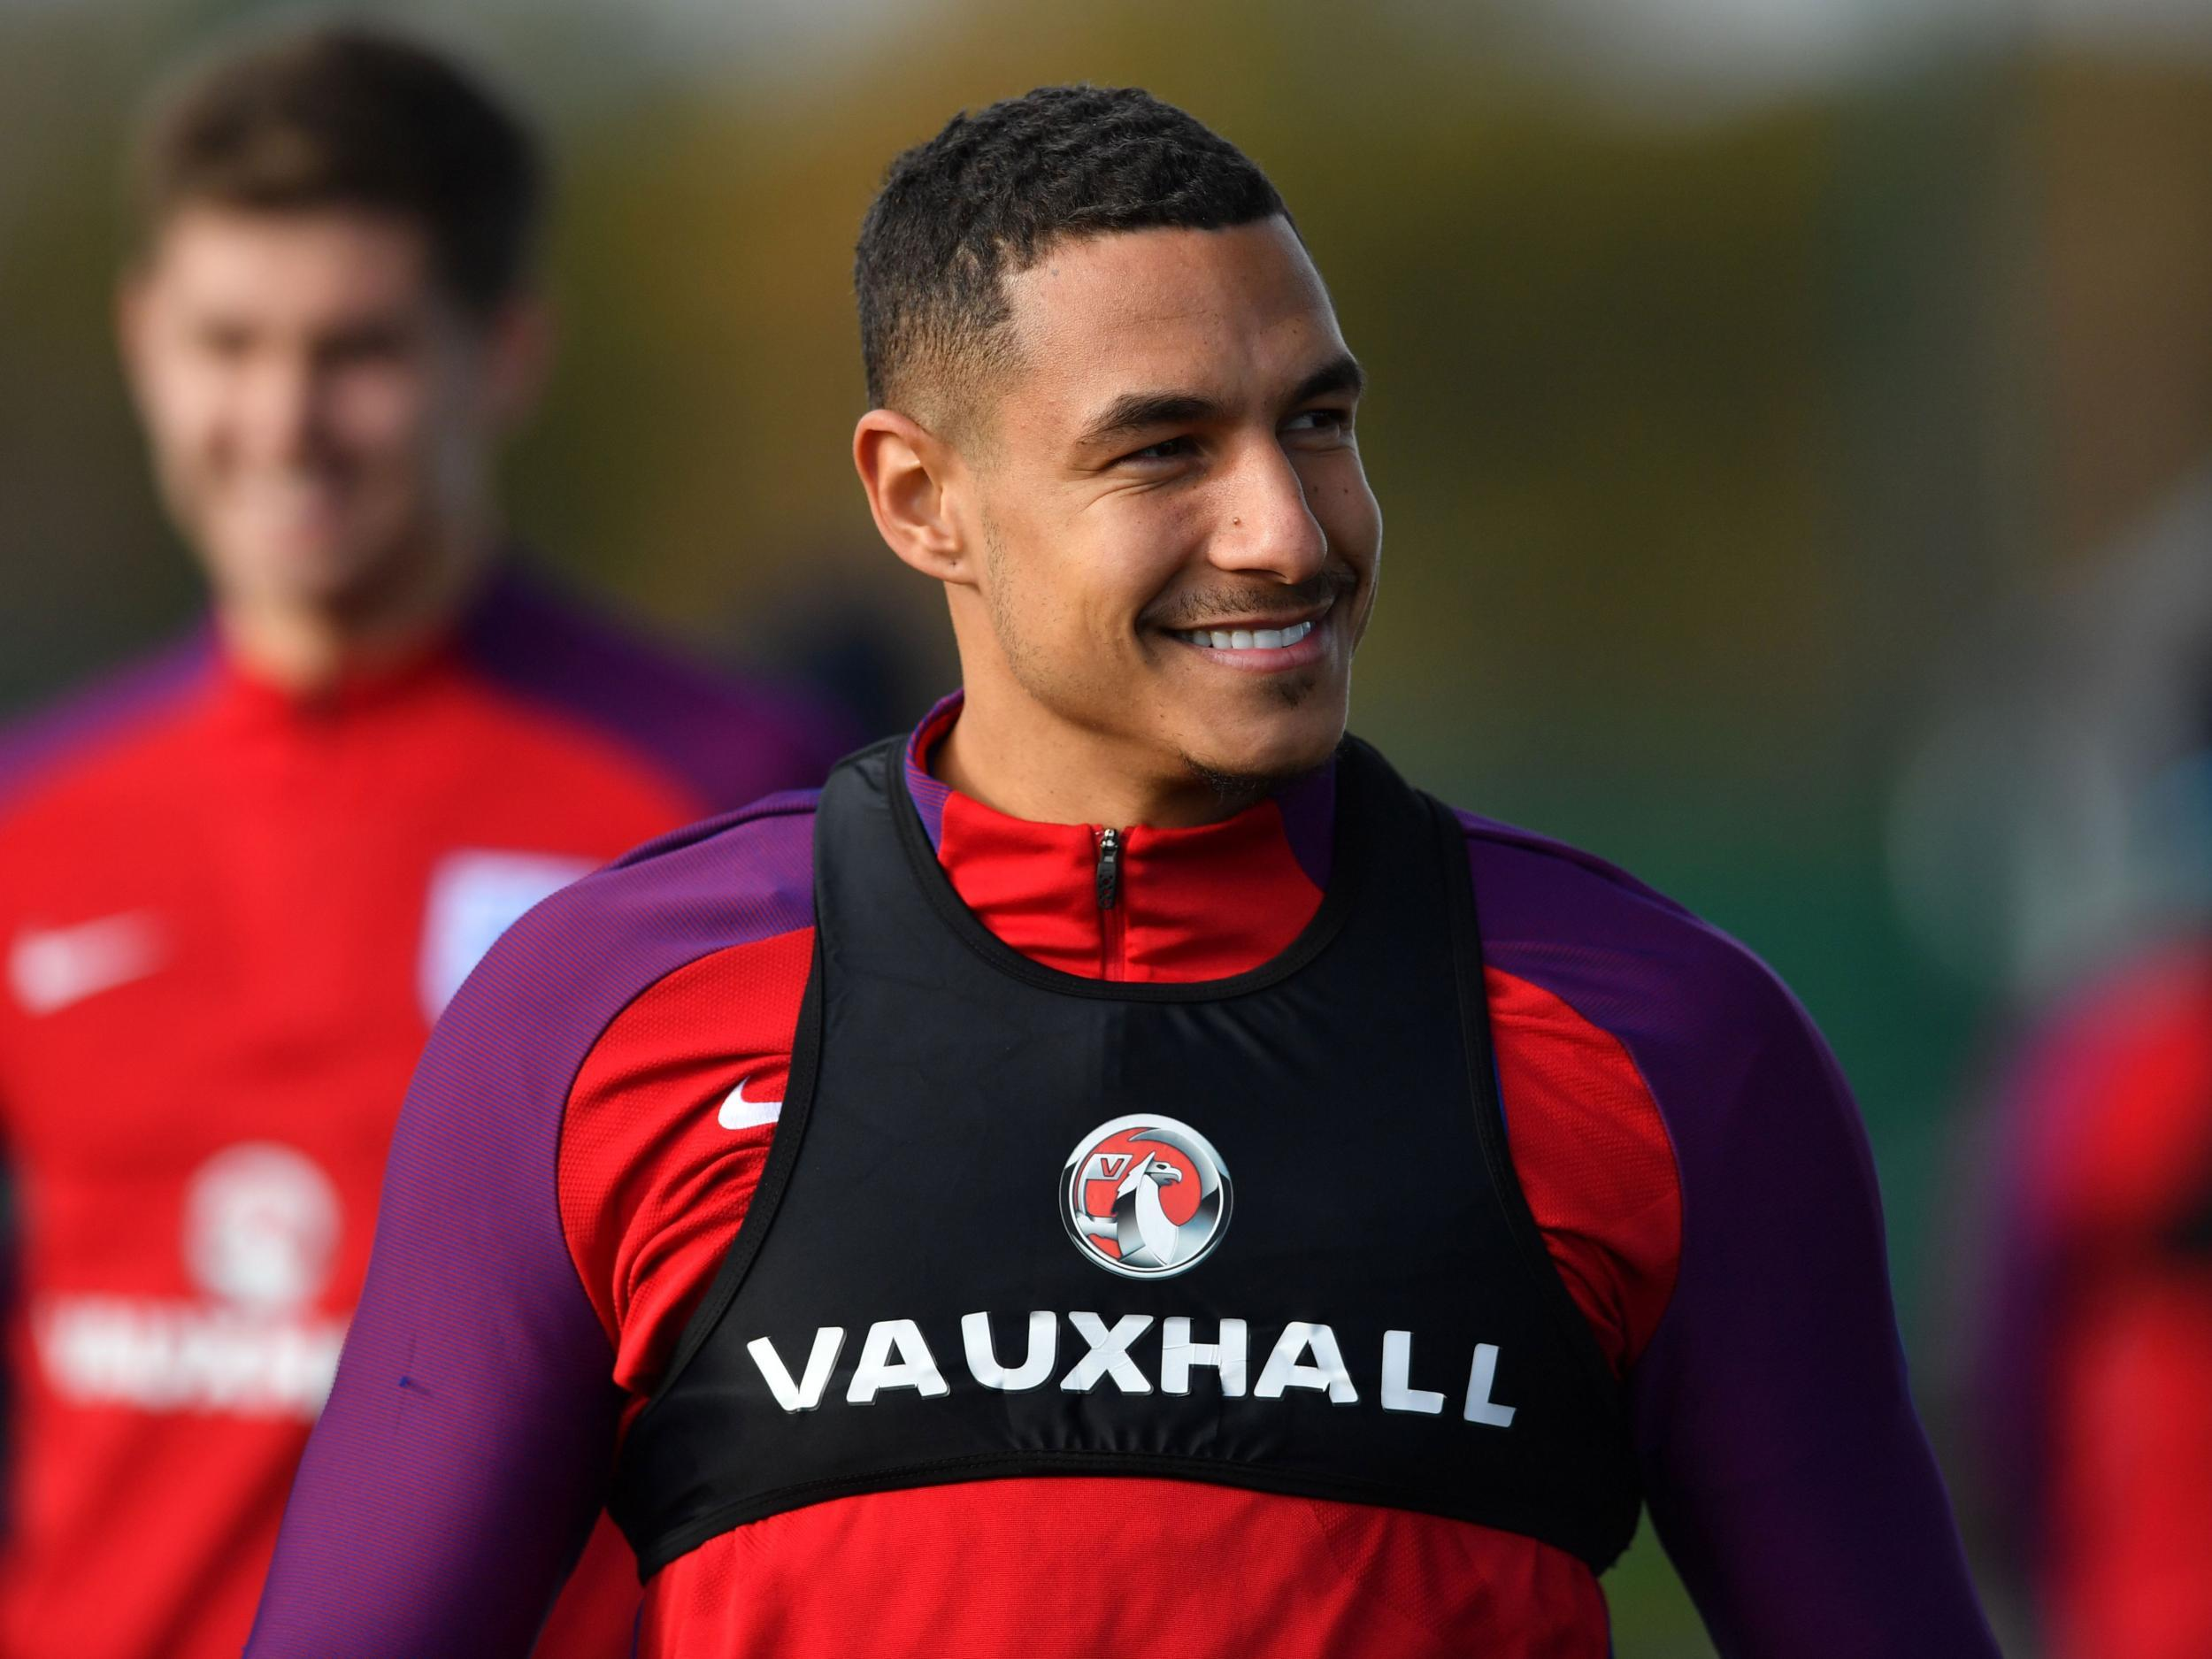 England manager Gareth Southgate defends decision to pick Jake Livermore